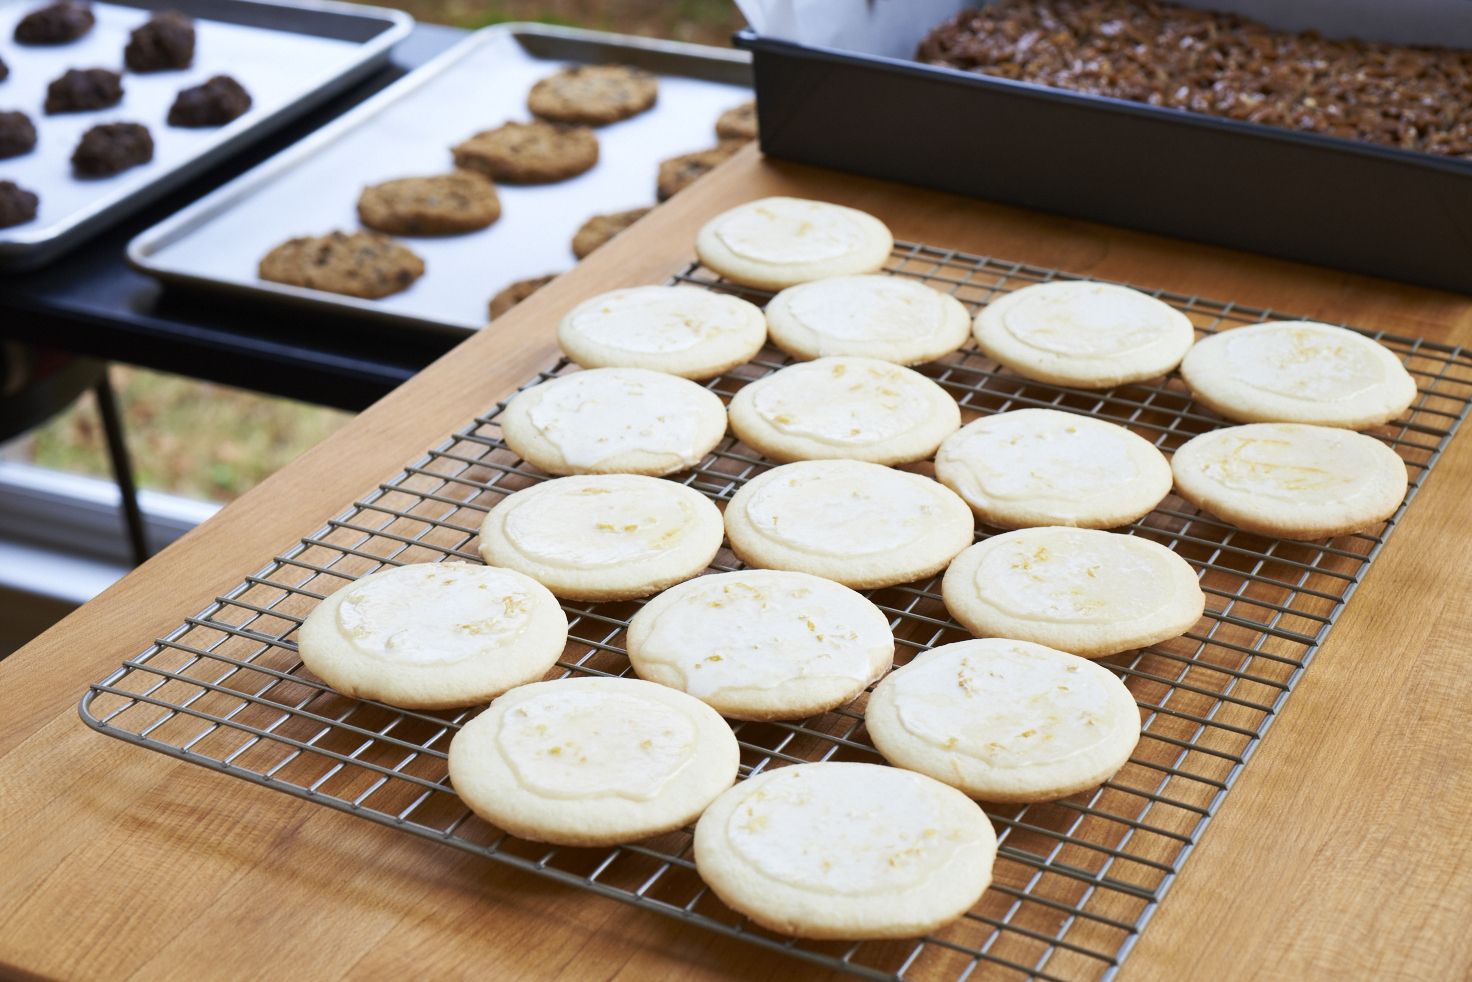 Bake plenty of plain cookies for the kids to decorate before party time.